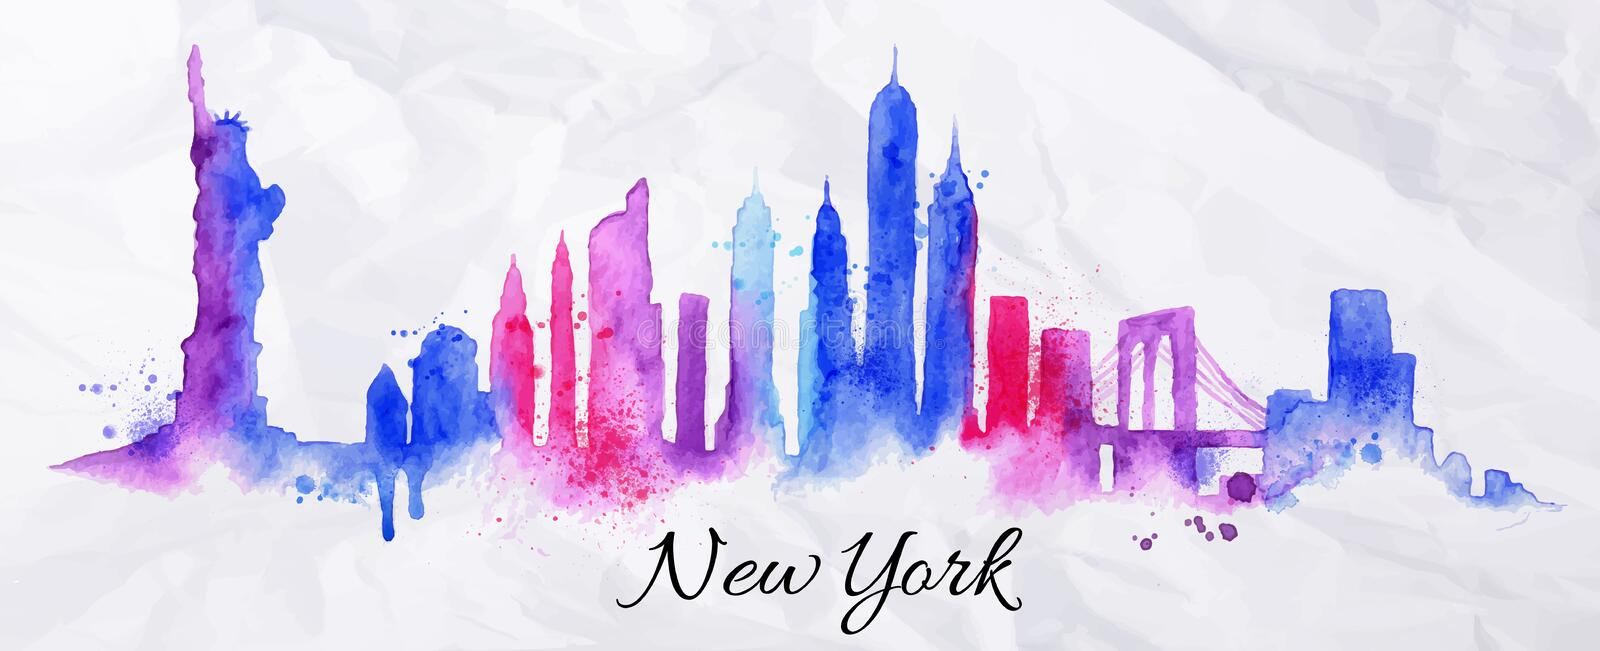 Silhouette watercolor New york royalty free illustration